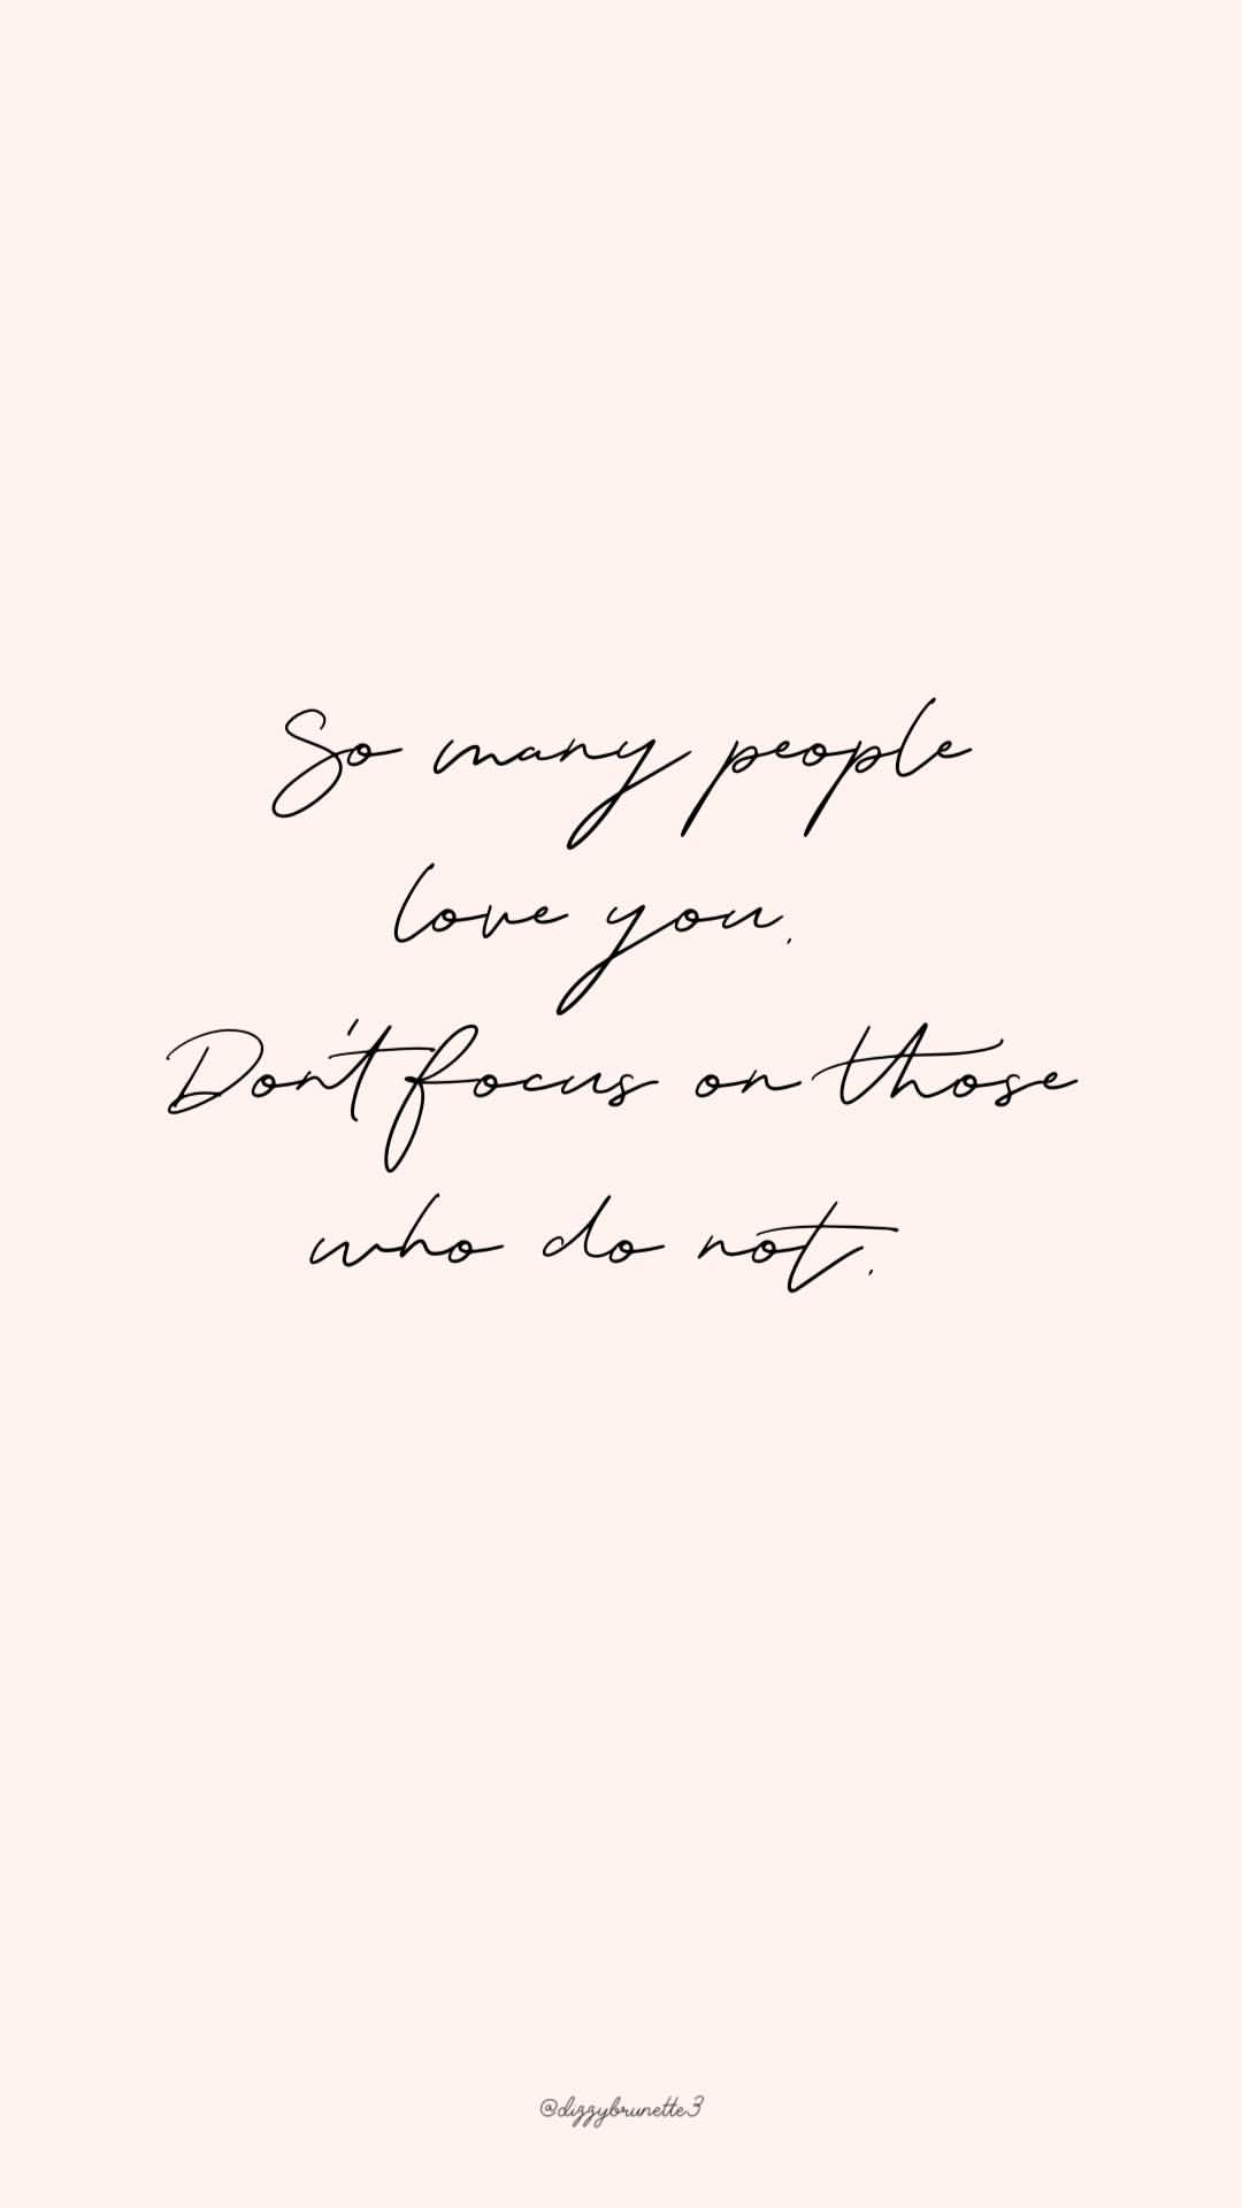 New List Of Nice Inspirational Quotes Wallpaper For Iphone Xr